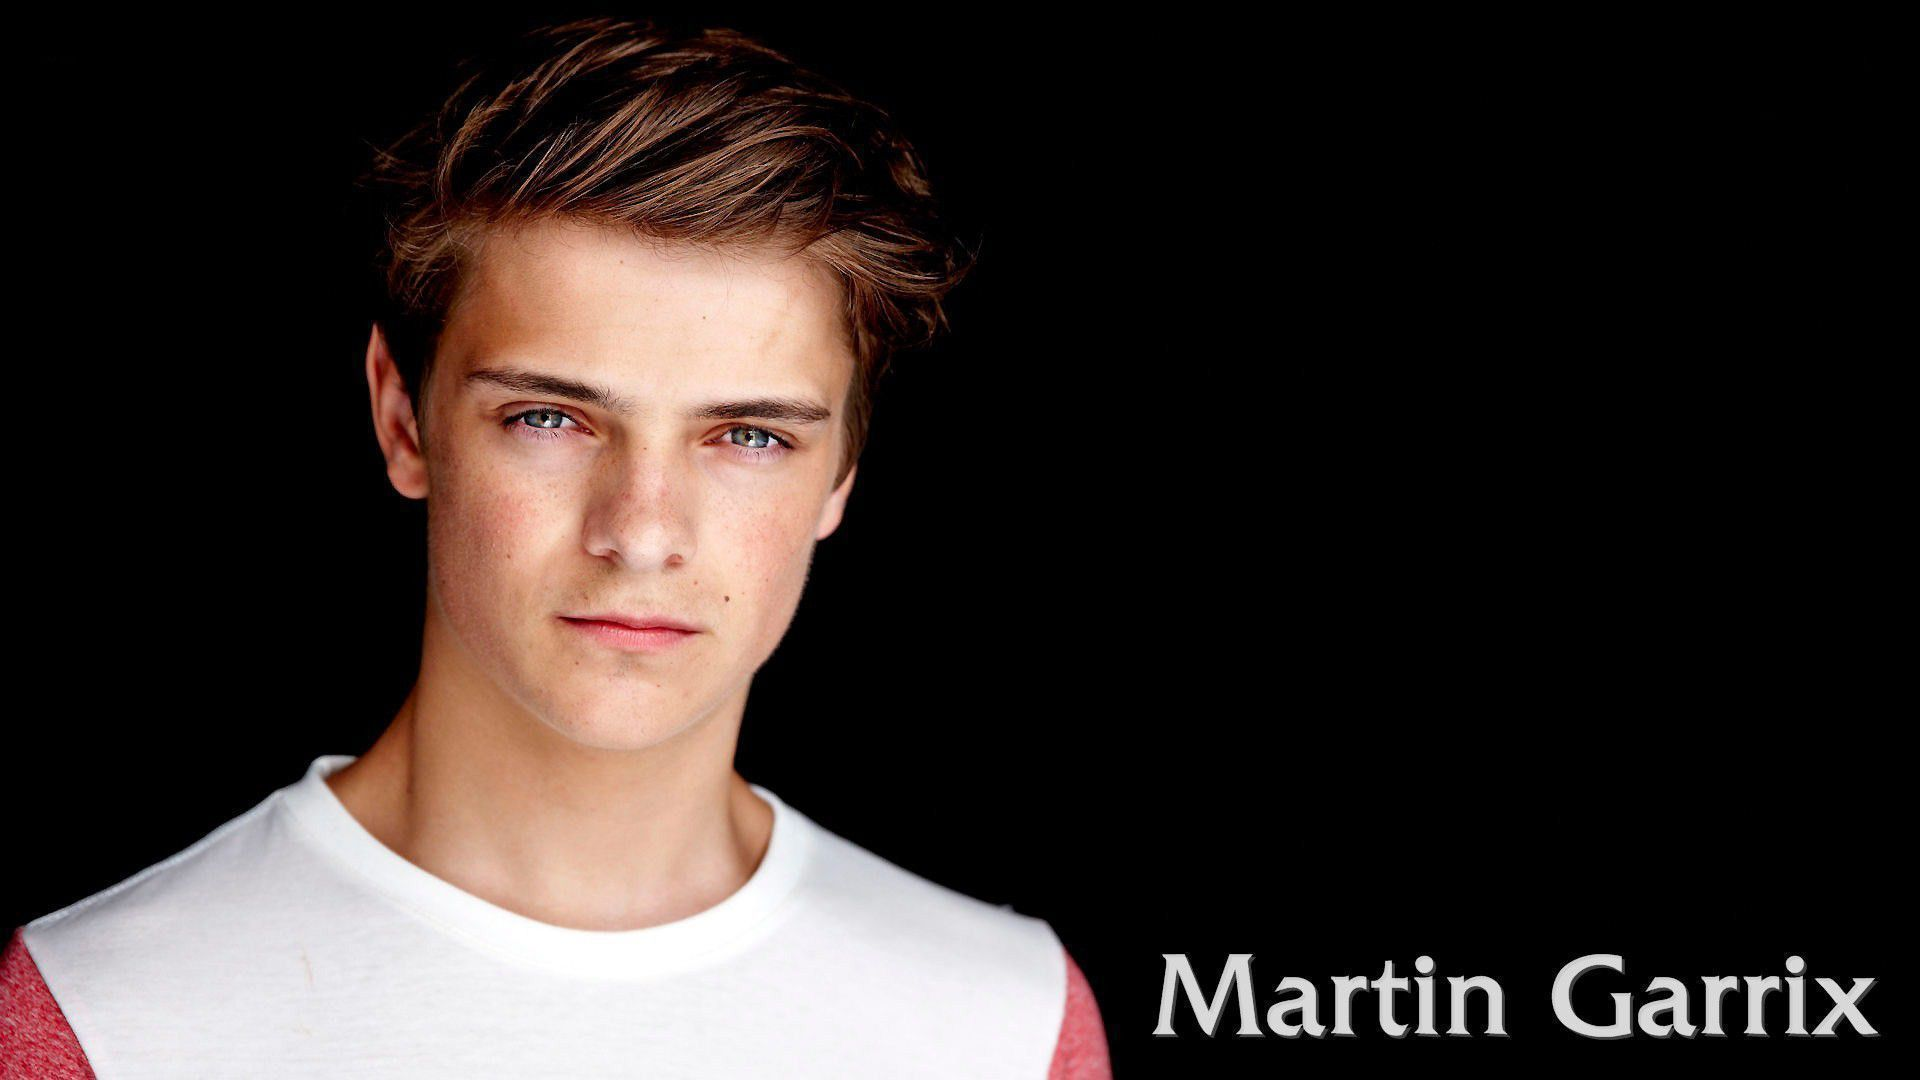 Martin Garrix Wallpapers Backgrounds